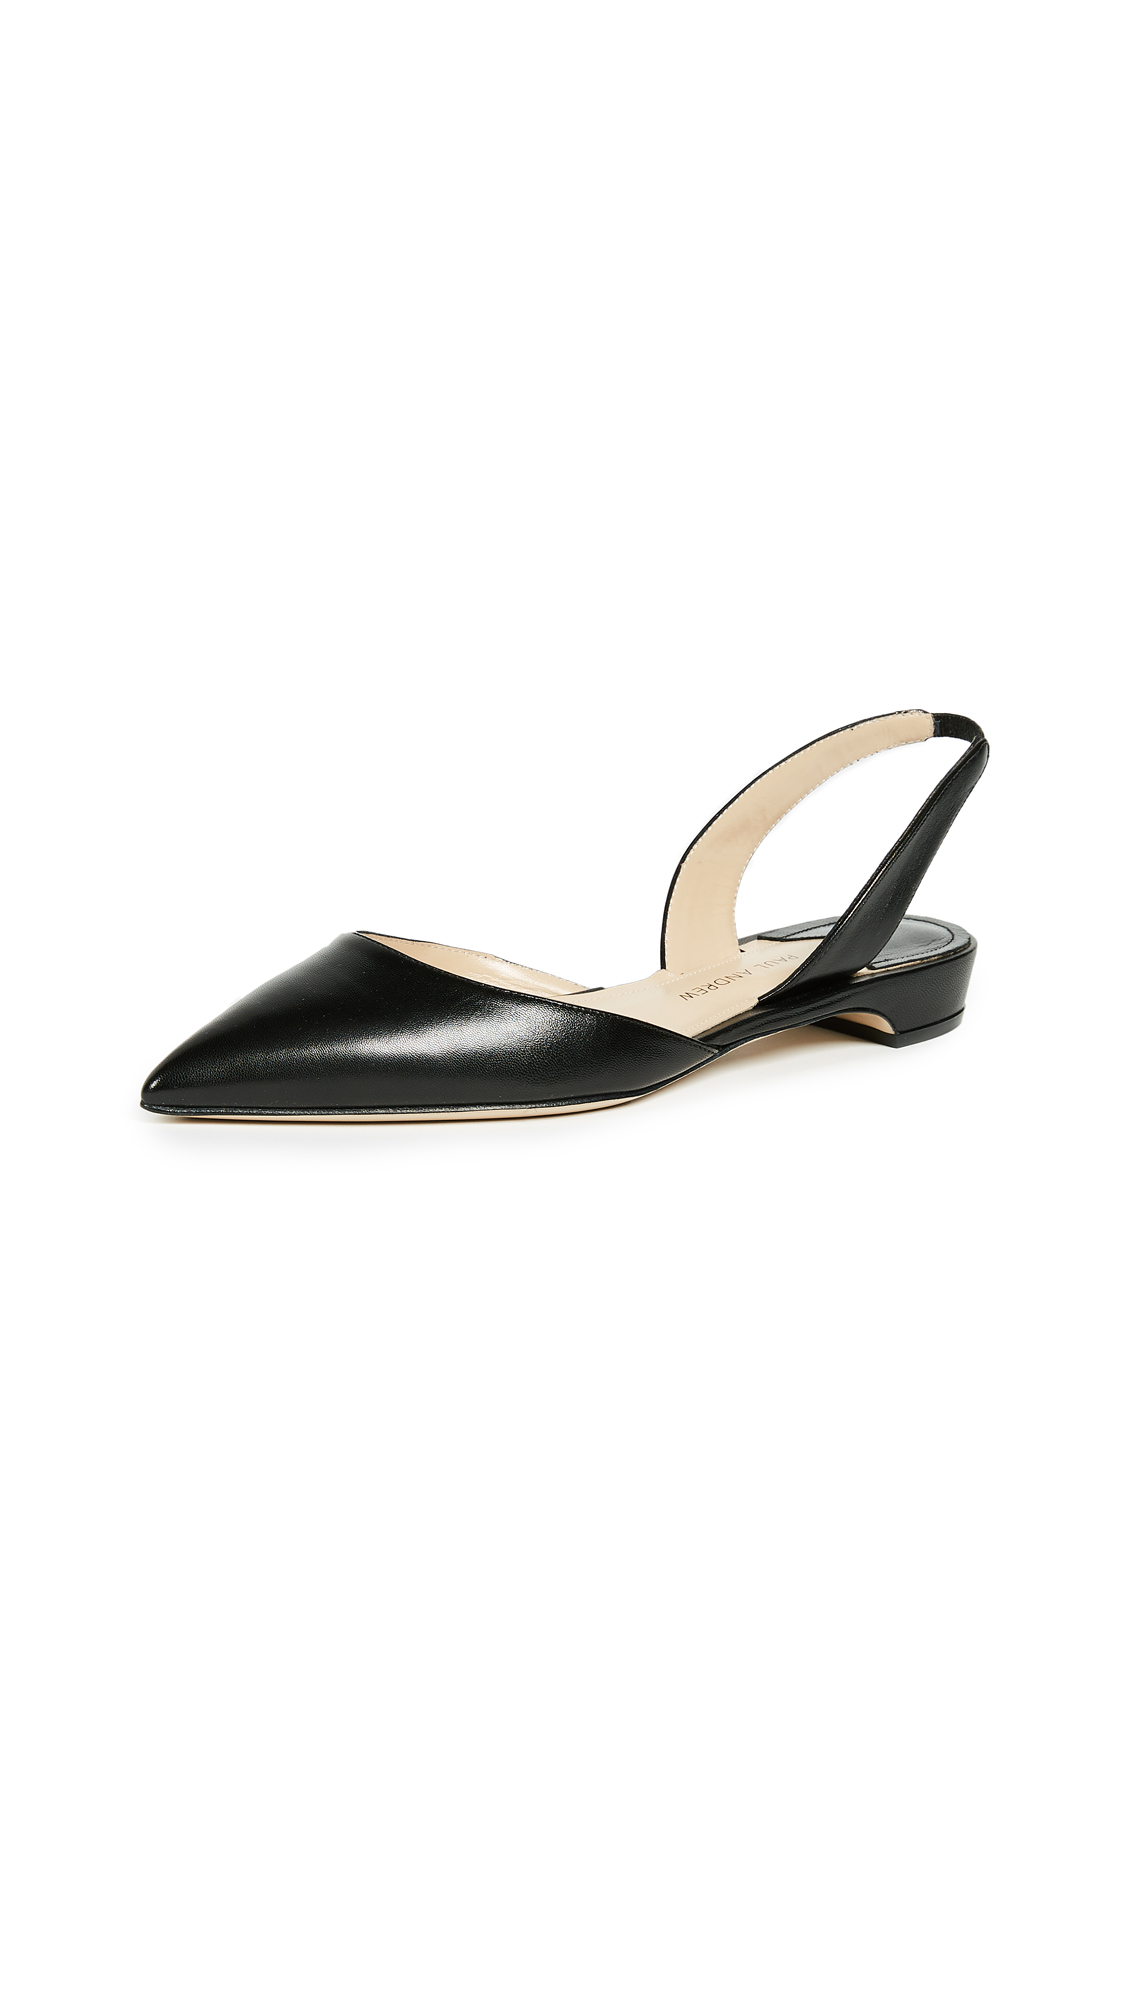 Paul Andrew Rhea 15 Flats - Black